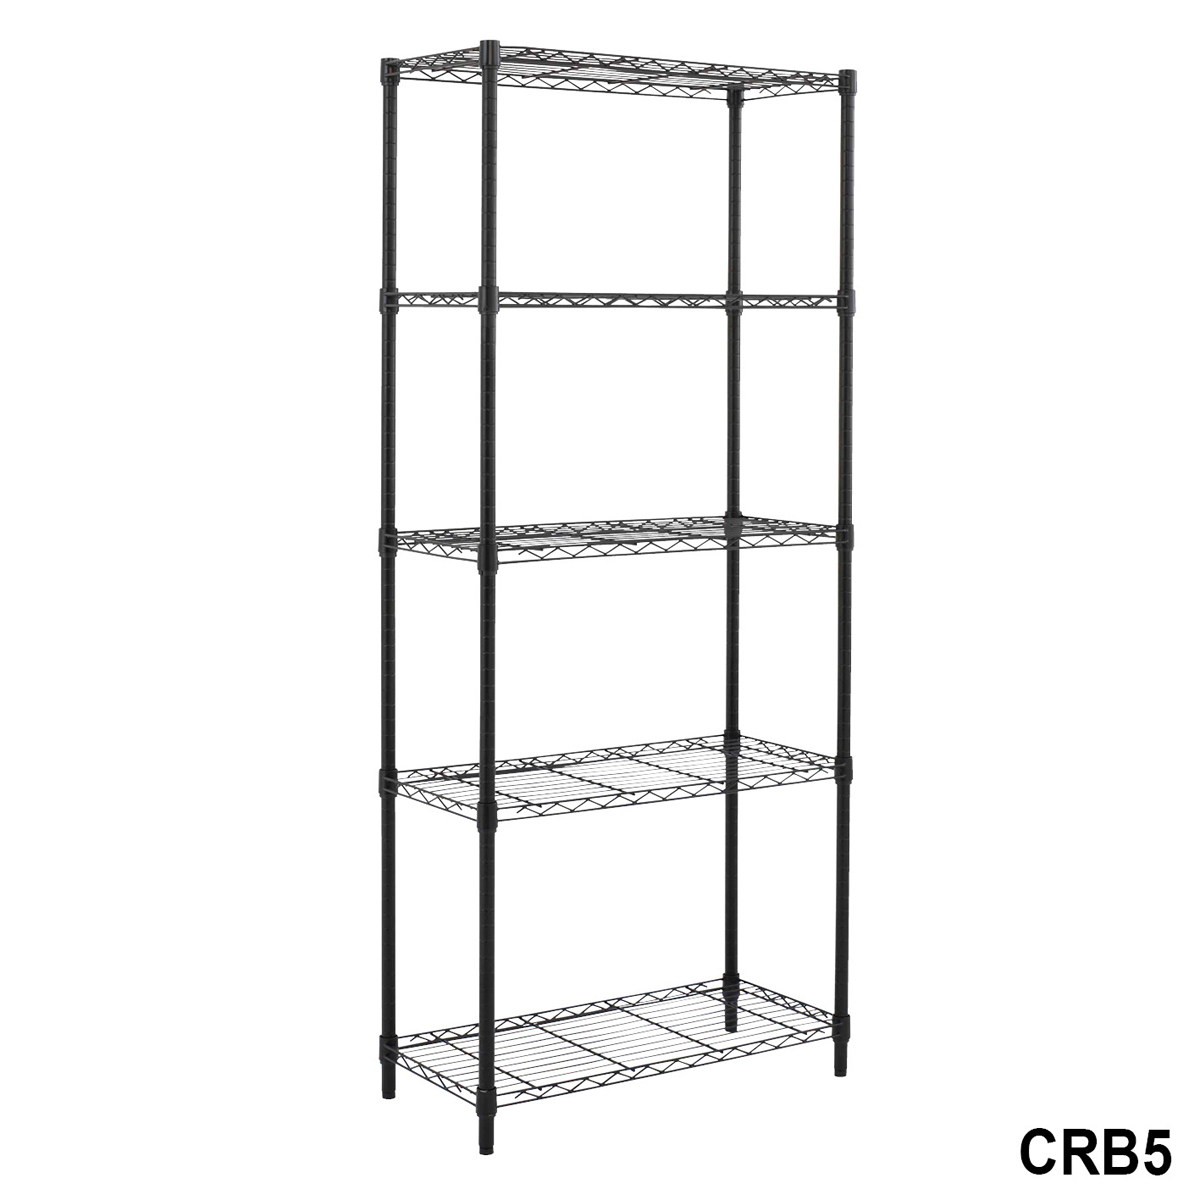 Black Wire Bay 5 Shelf Light Duty 1740h X 750w X 350d Shelving Unit